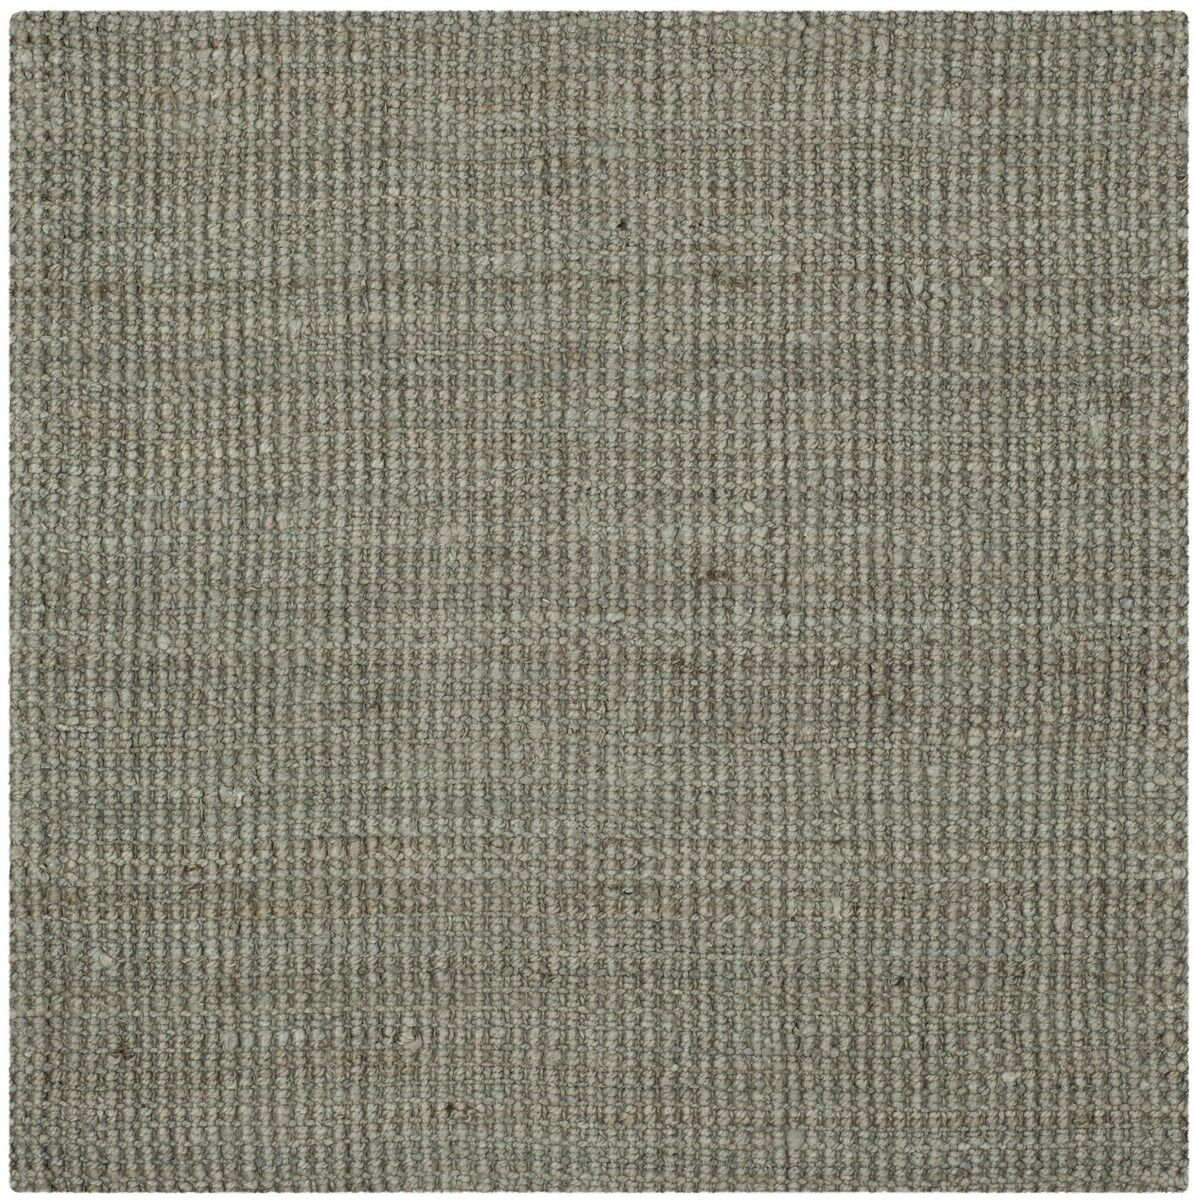 Calidia Hand-Loomed Gray Area Rug Rug Size: Square 9'